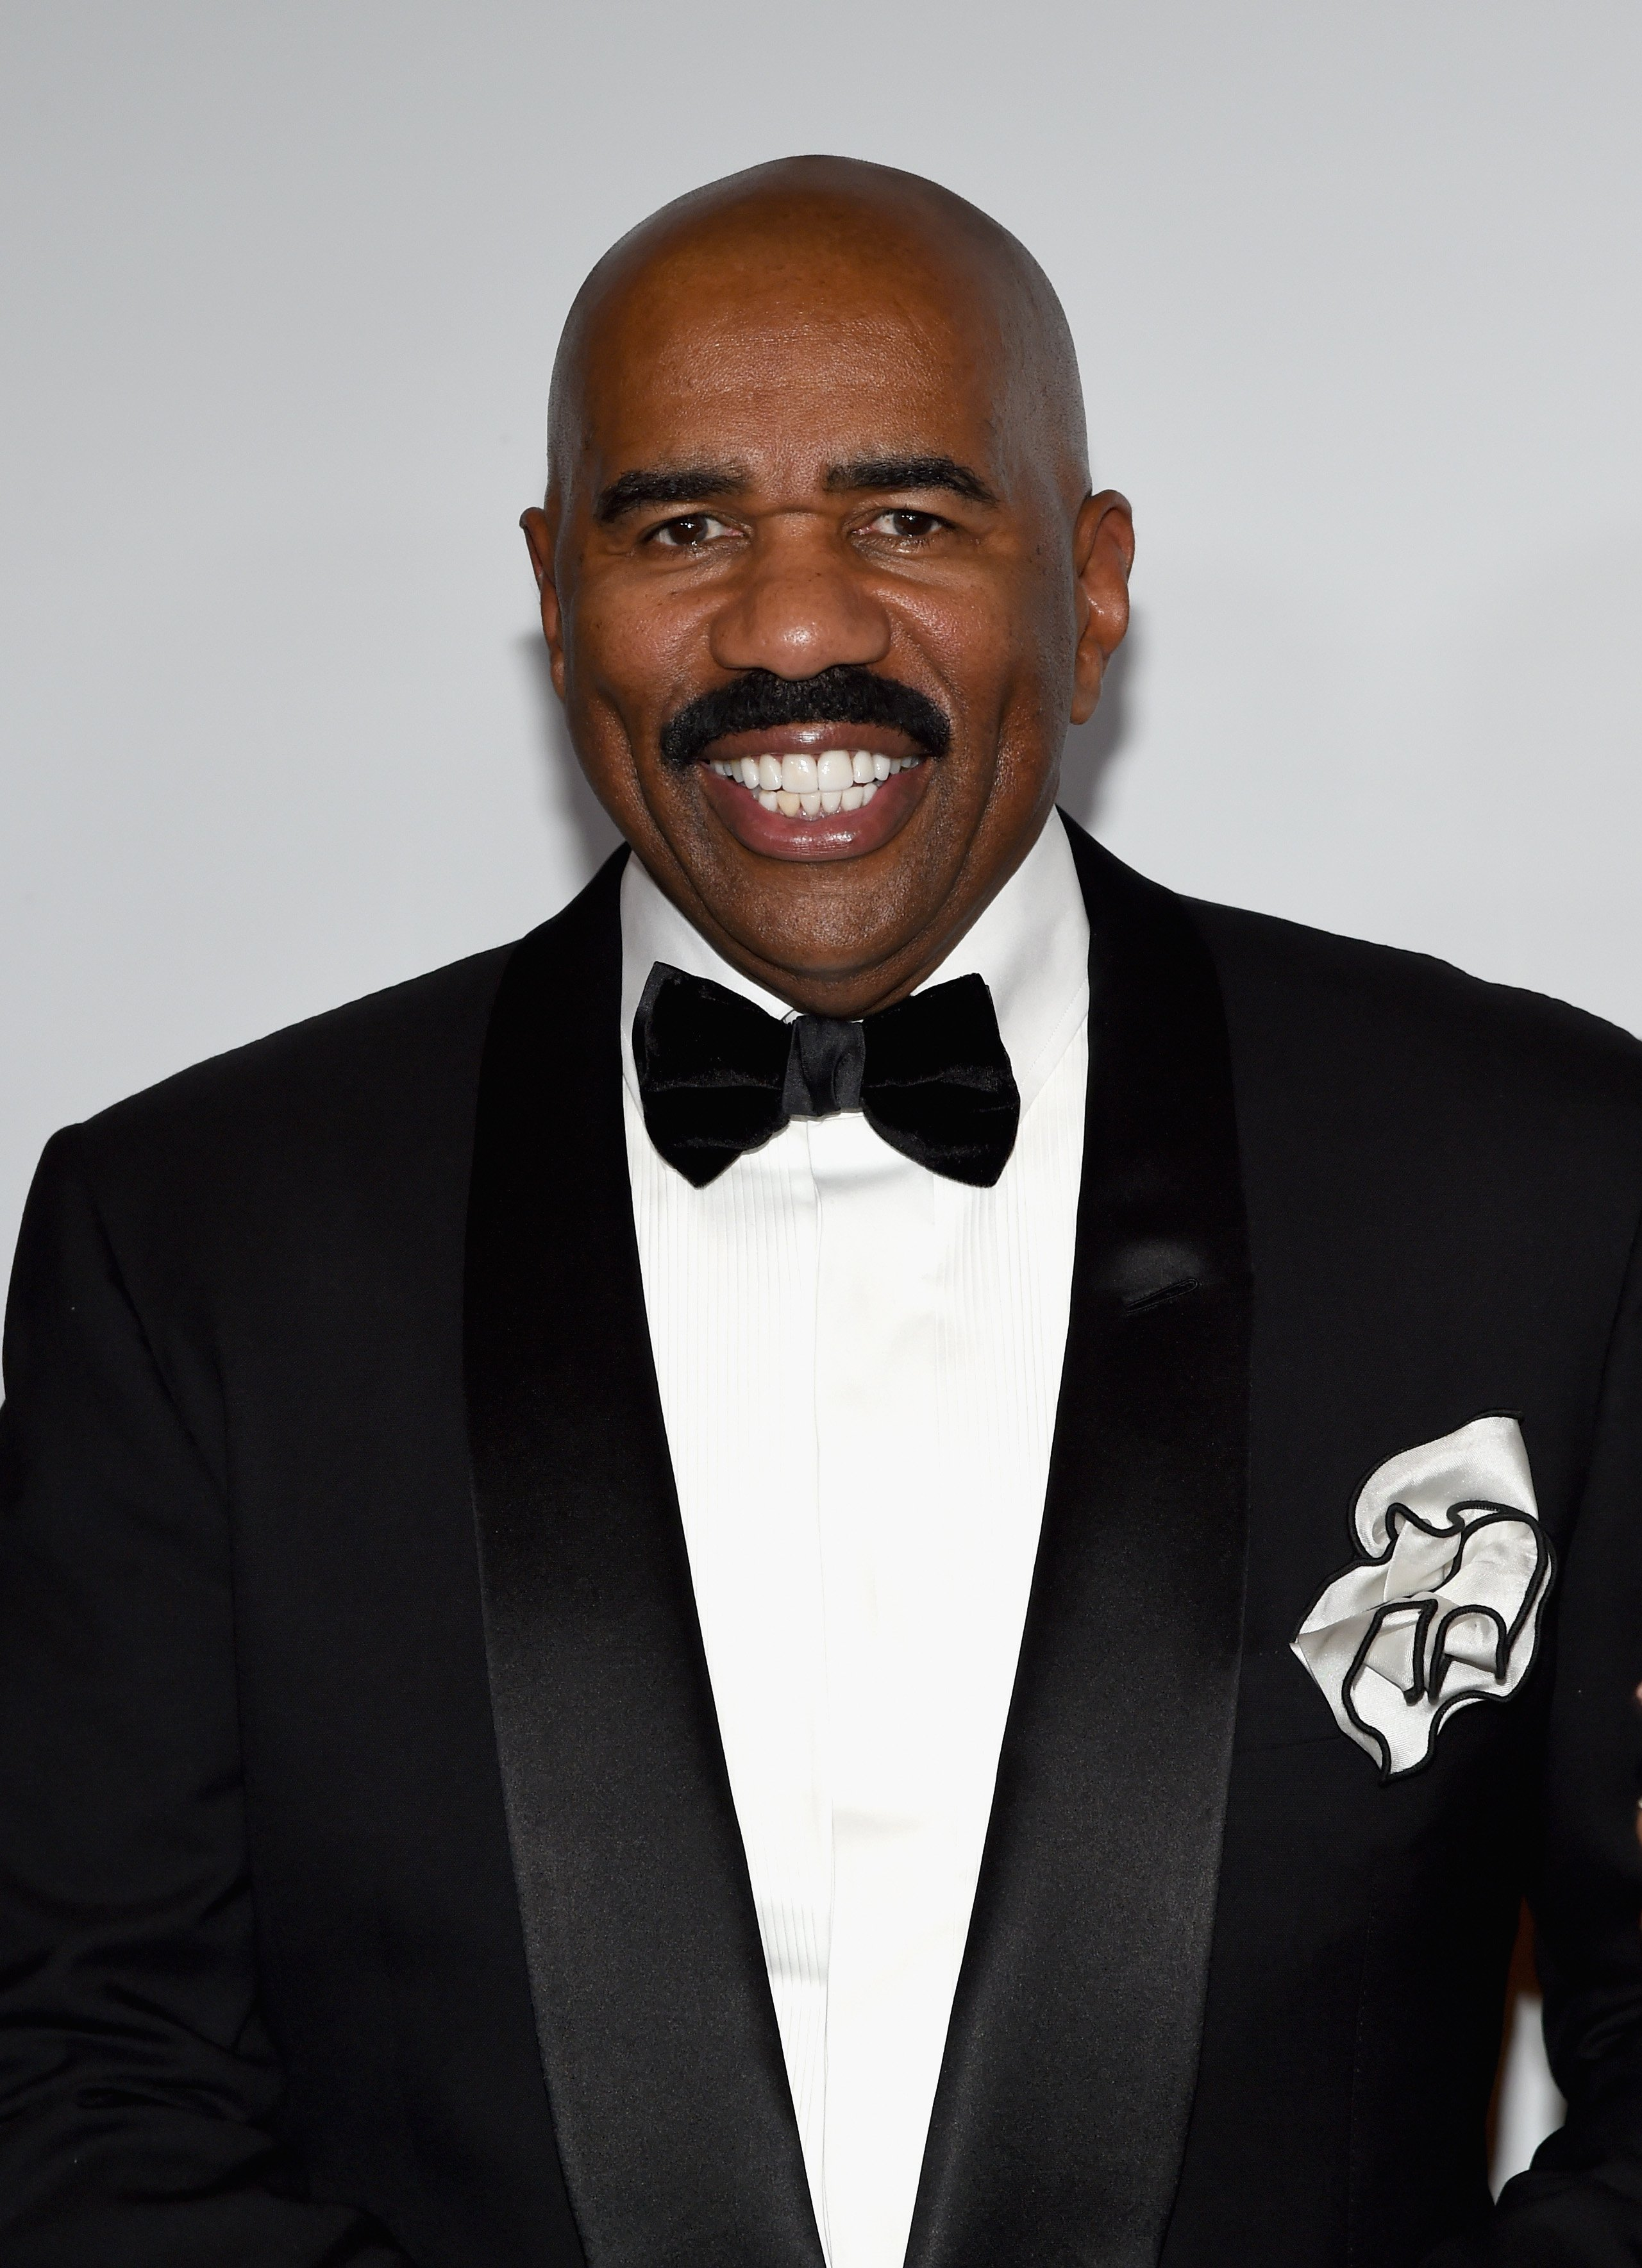 Steve Harvey attends the 2015 Miss Universe Pageant at Planet Hollywood Resort & Casino on December 20, 2015 in Las Vegas, Nevada. | Photo: Getty Images